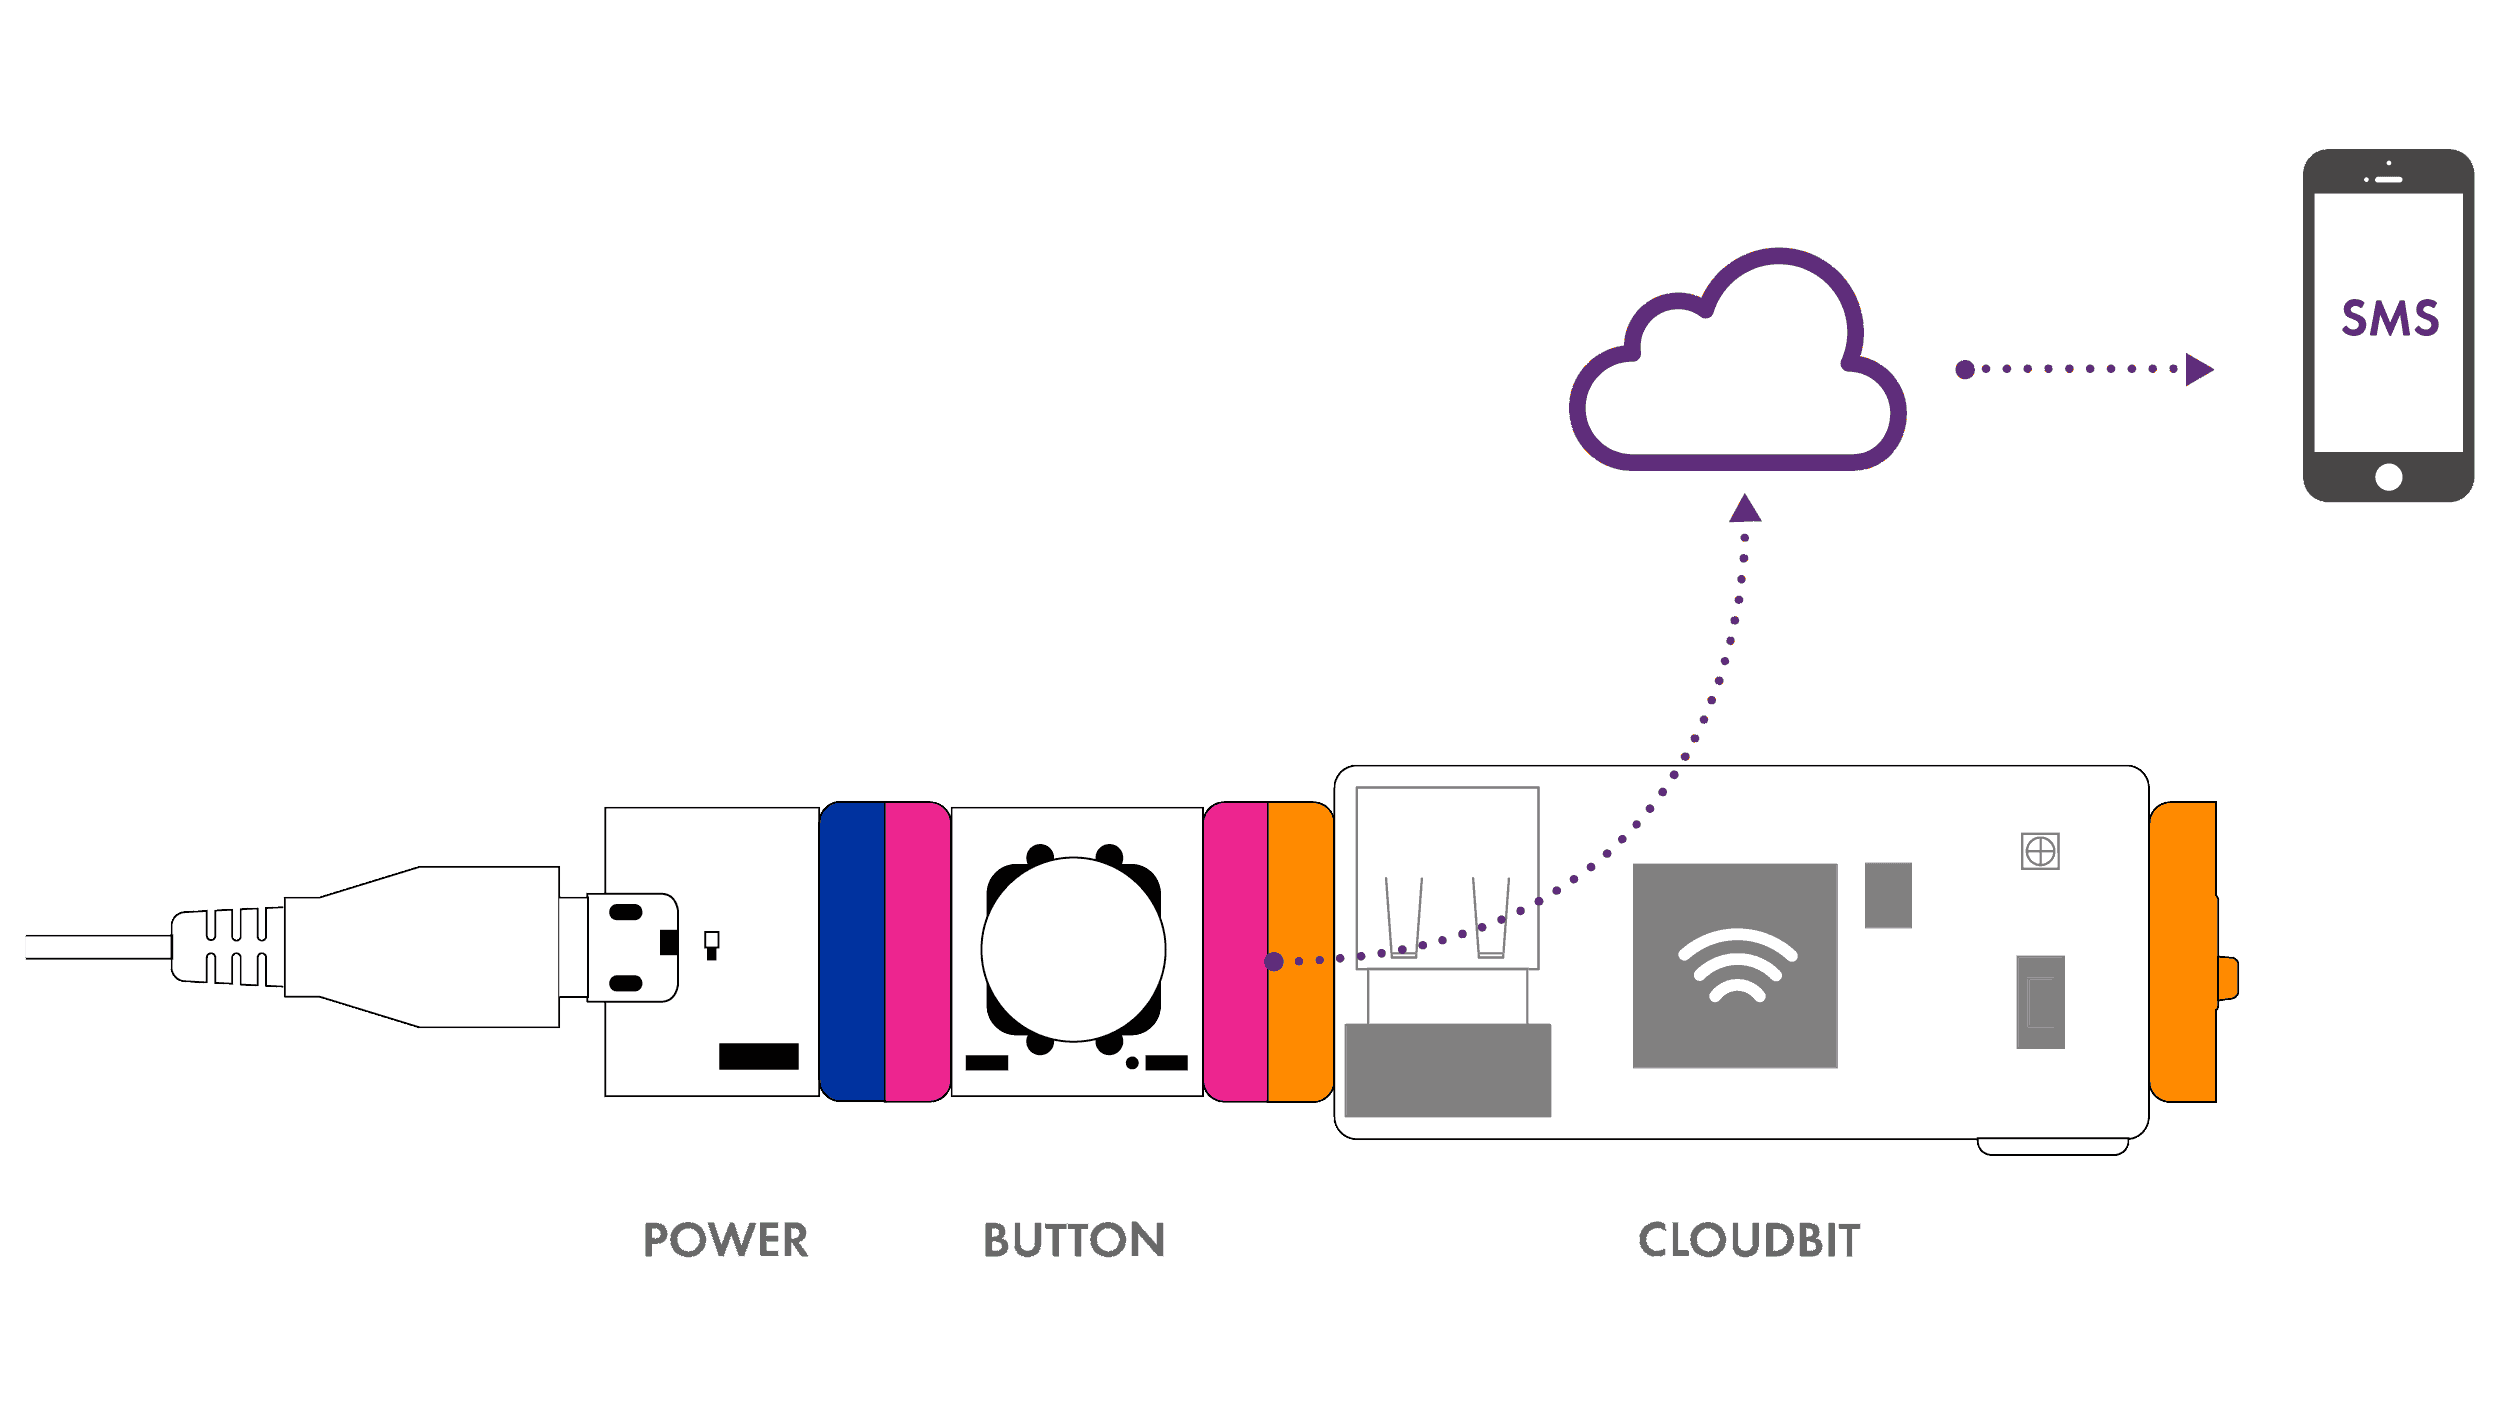 Cloudbit Littlebits Circuit Shop You Can Use The Main Window Of To Design Also Acts As An Output By Sending Signal From Event On Internet Your This Would Be Like Turning A Motor